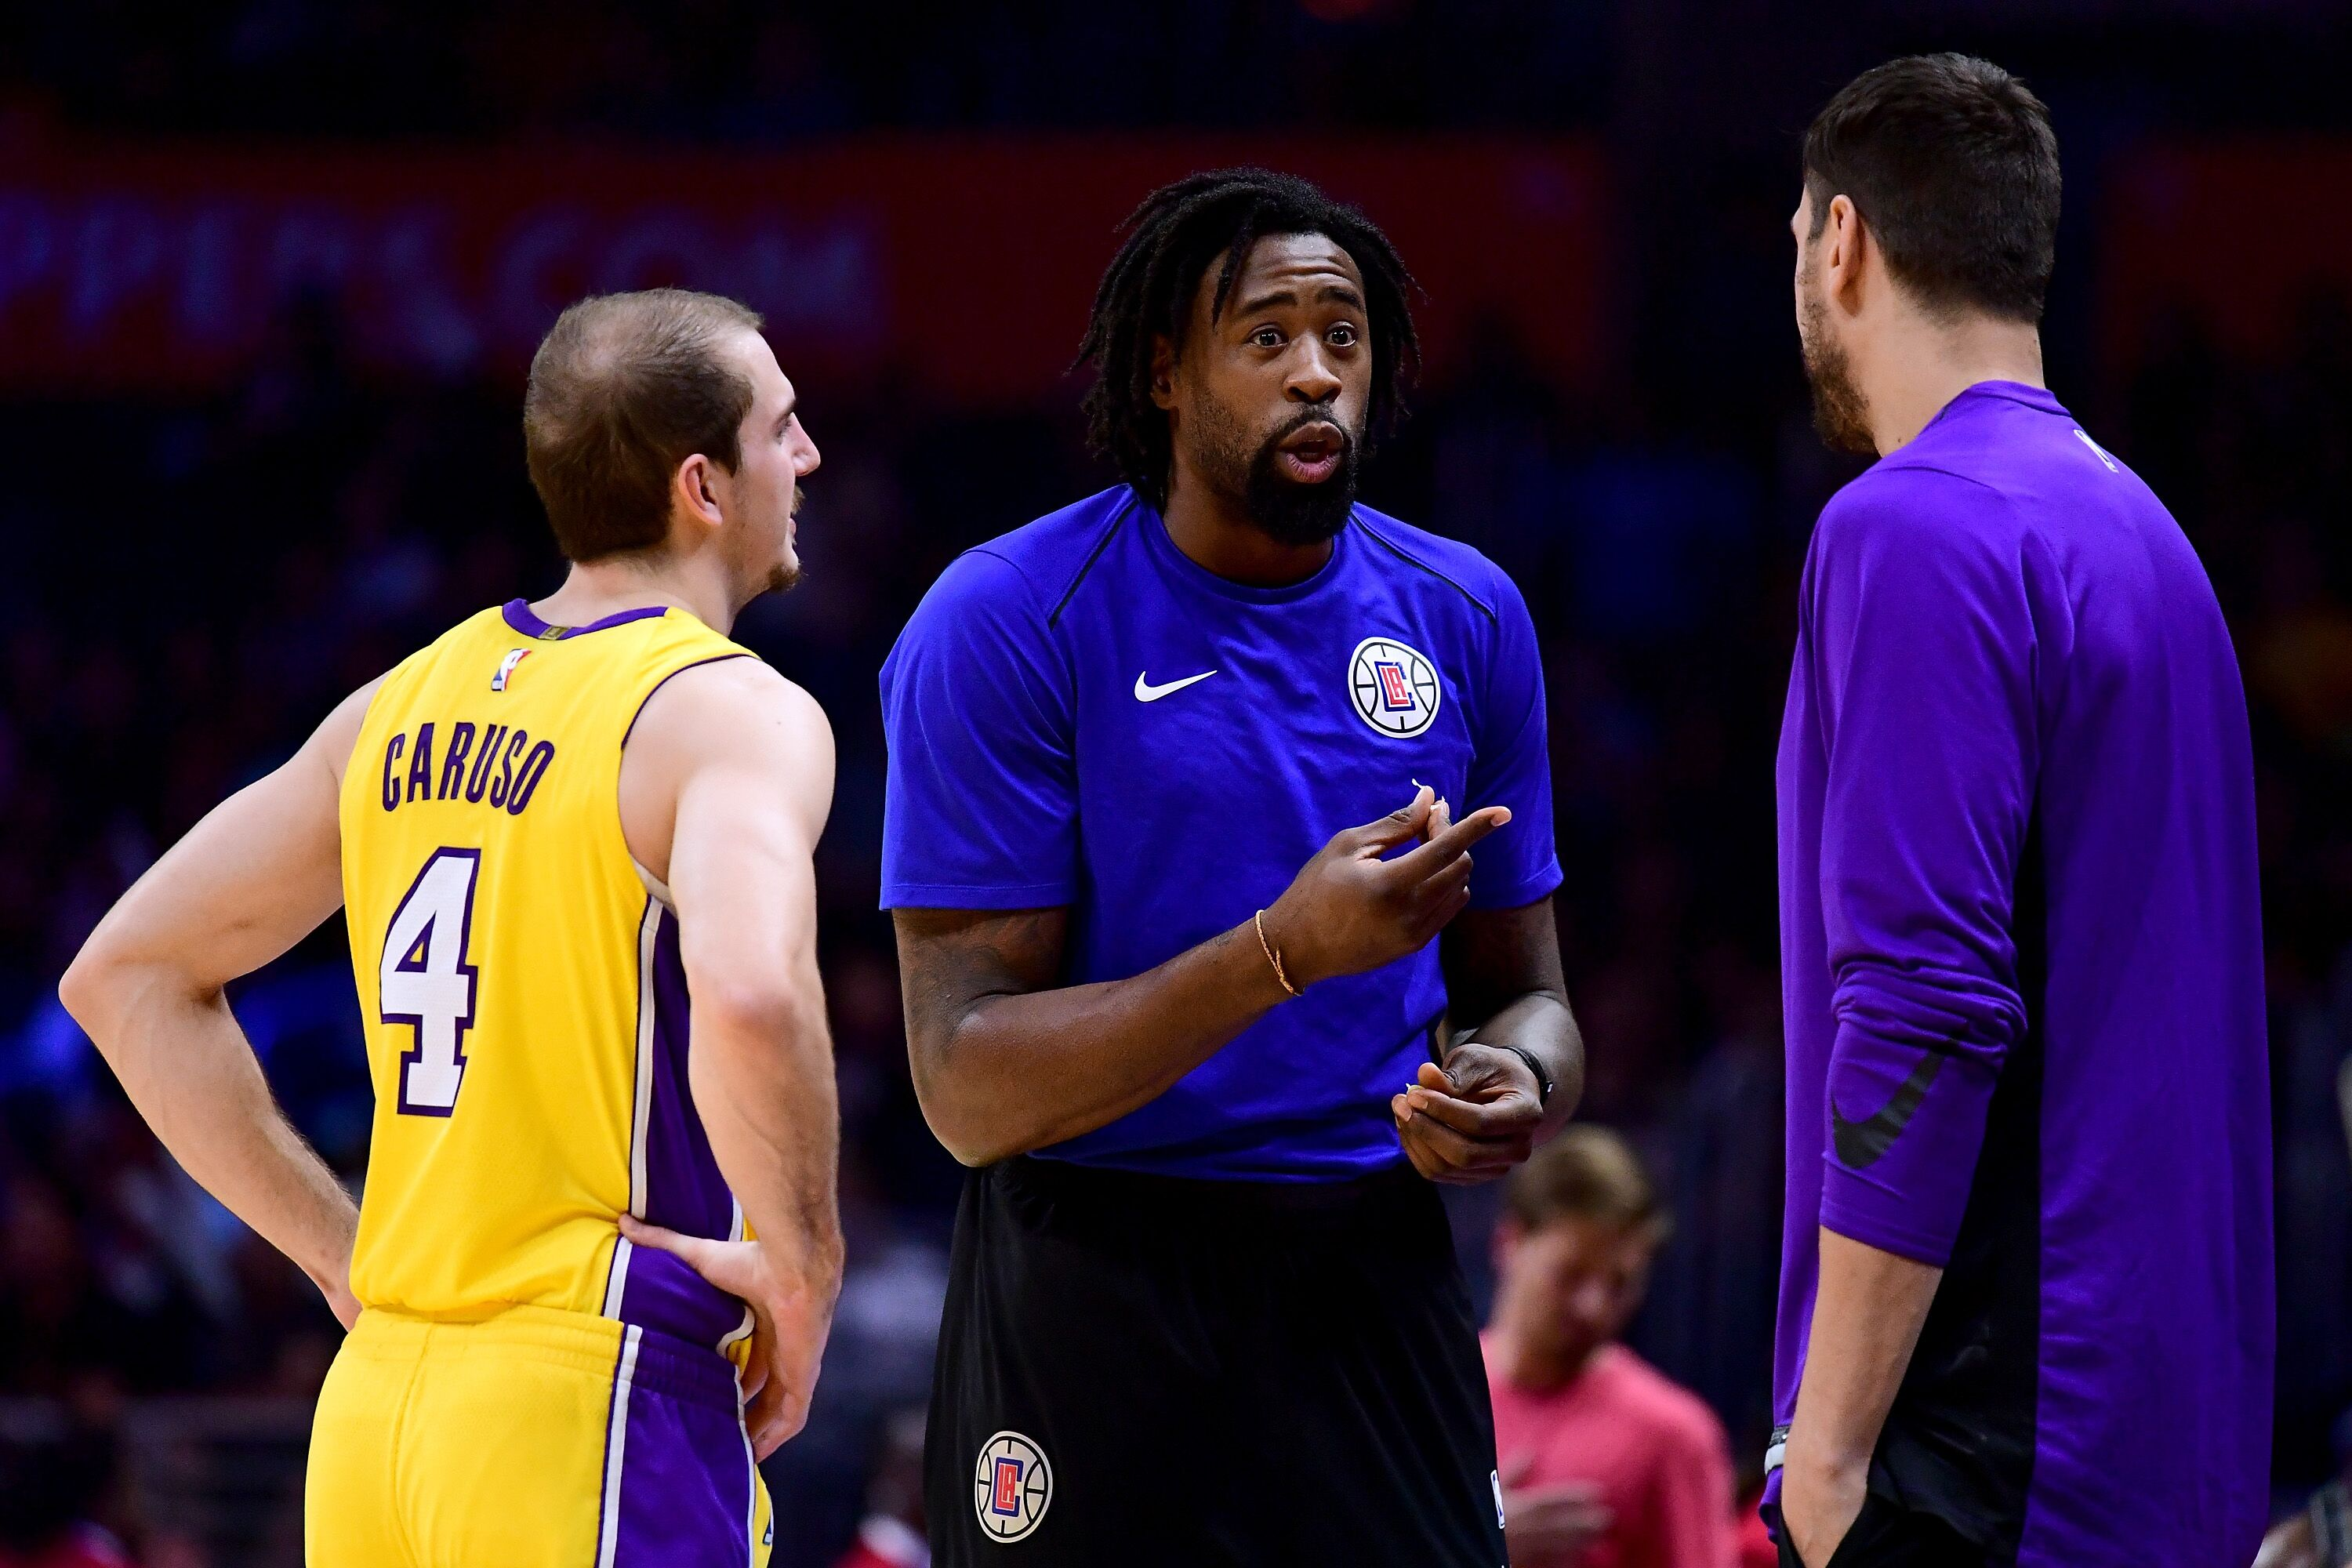 863135104-los-angeles-lakers-v-los-angeles-clippers.jpg